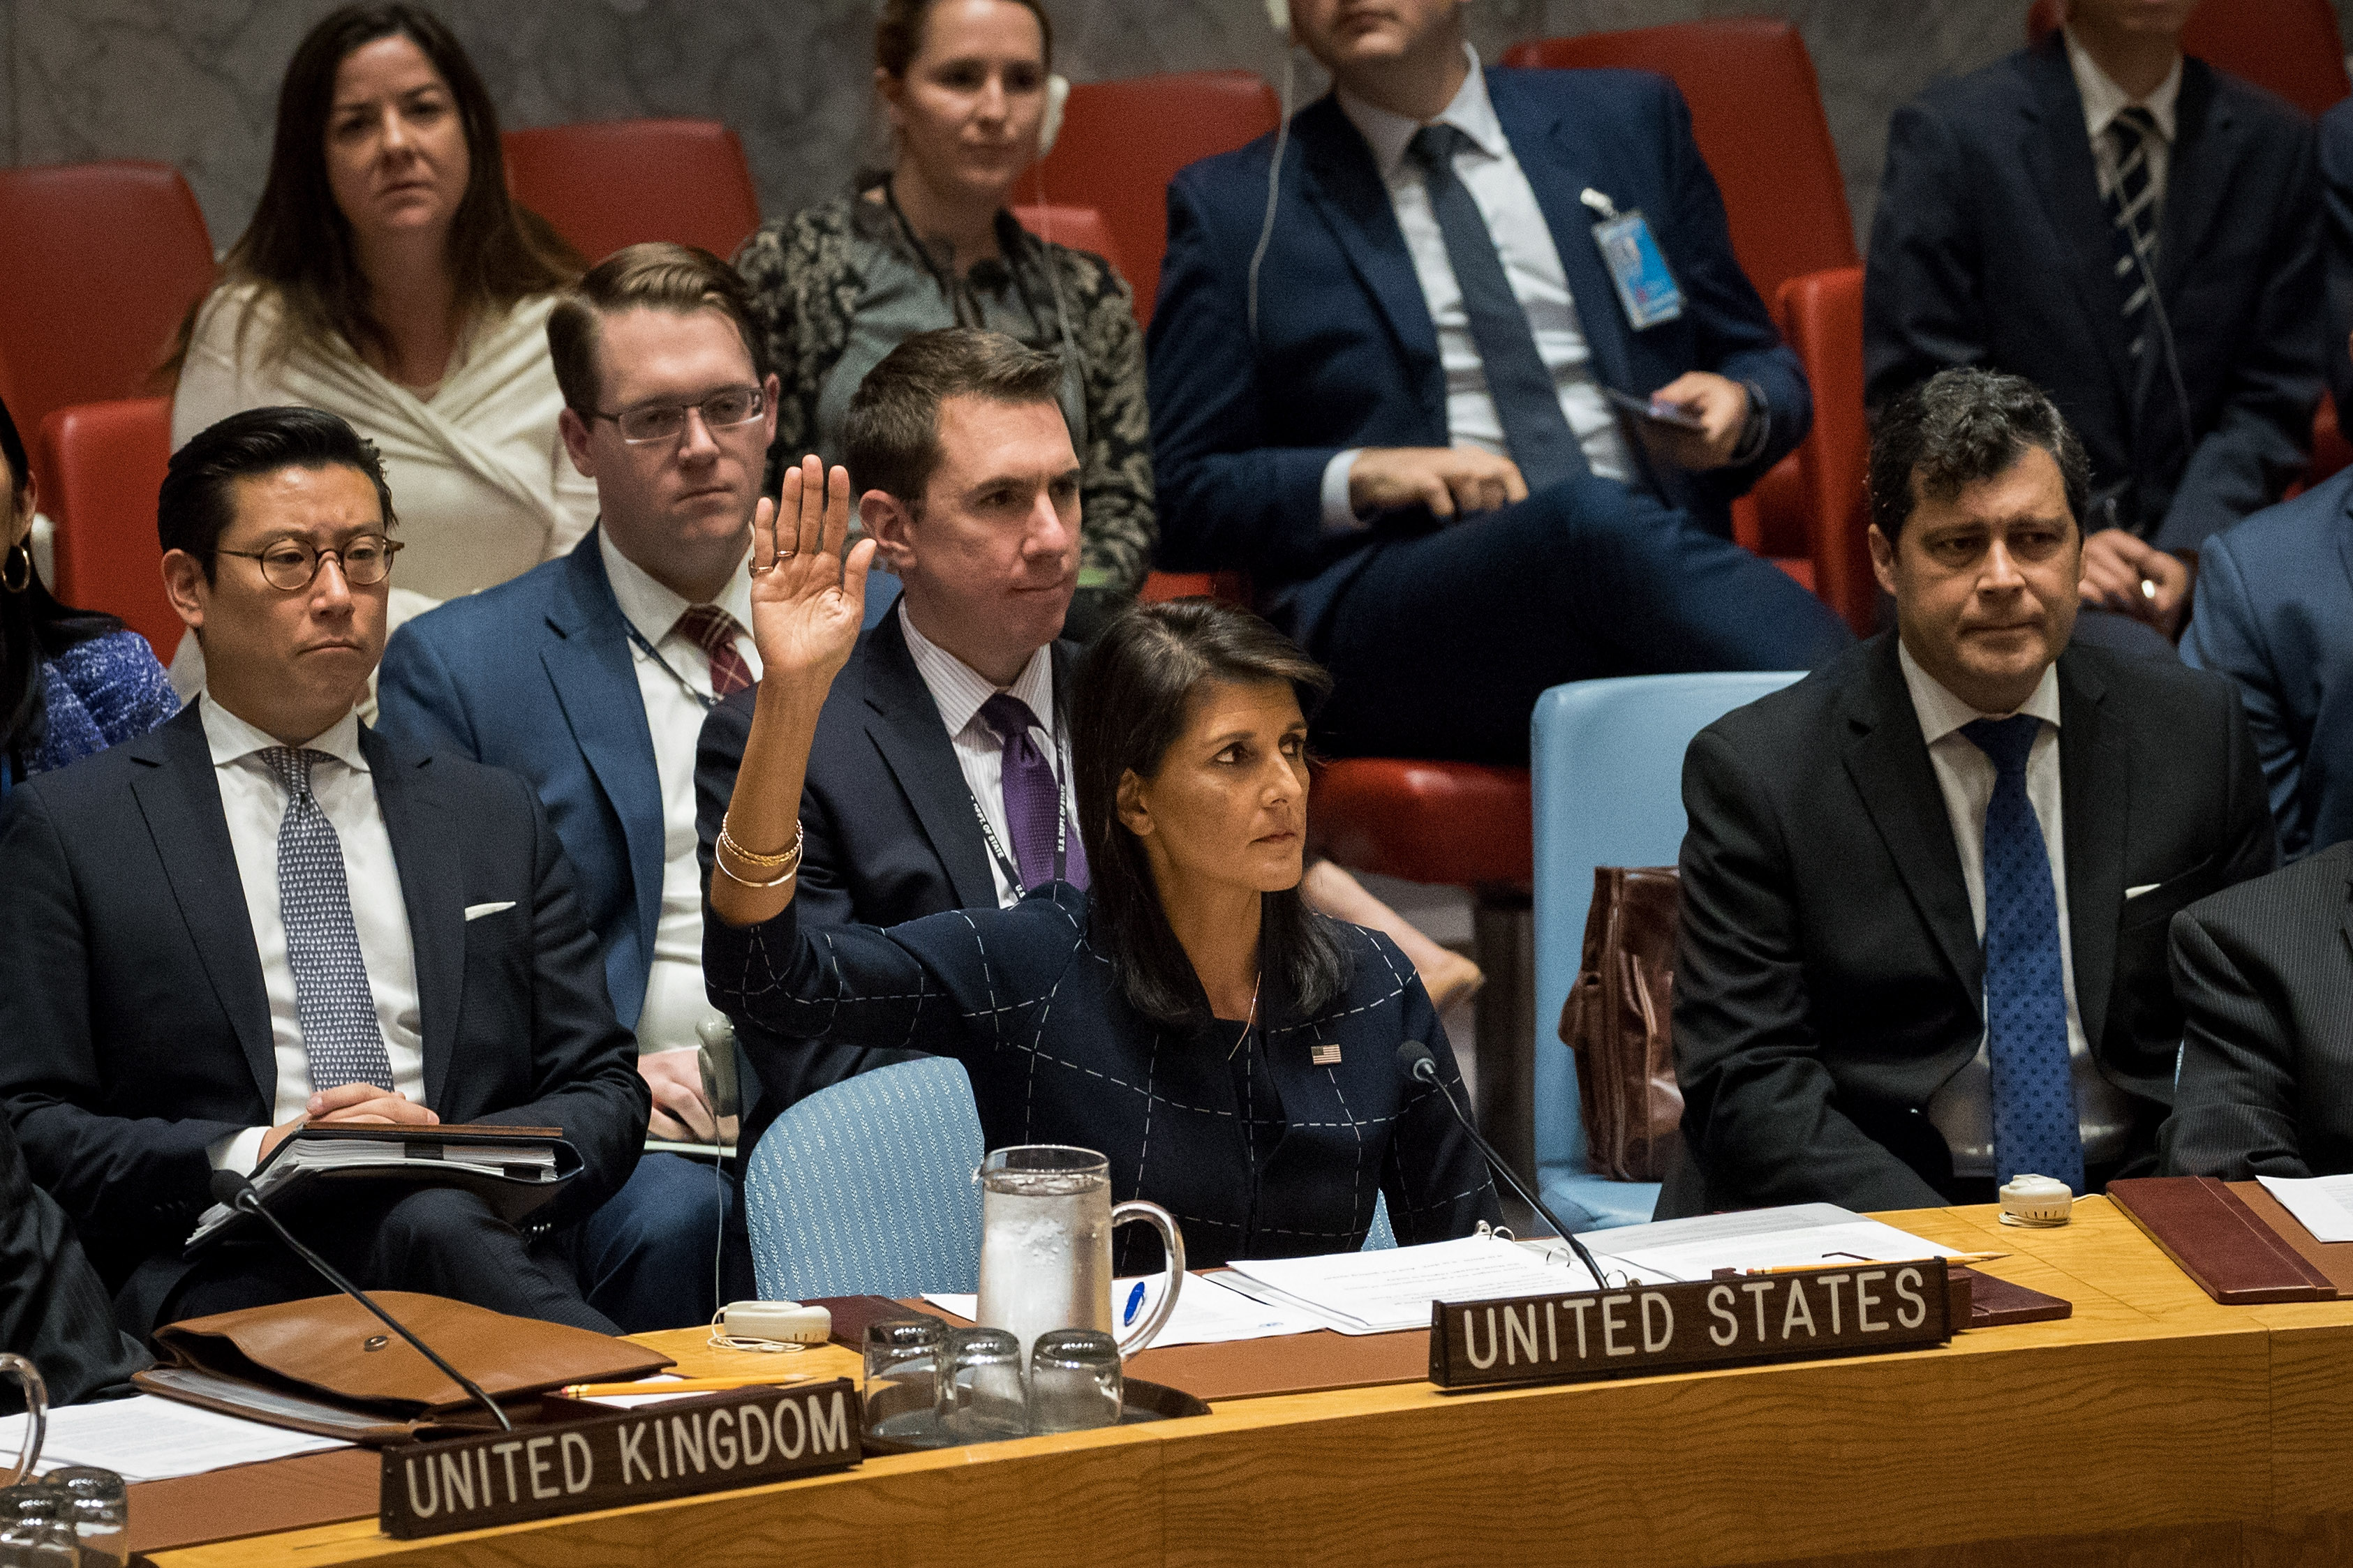 Nikki Haley, United States ambassador to the United Nations, raises her hand as she votes yes to levy new sanctions on North Korea designed to curb their nuclear ambitions during a meeting of the United Nations Security Council concerning North Korea at UN headquarters in New York City on Sept. 11, 2017. (Photo by Drew Angerer/Getty Images)